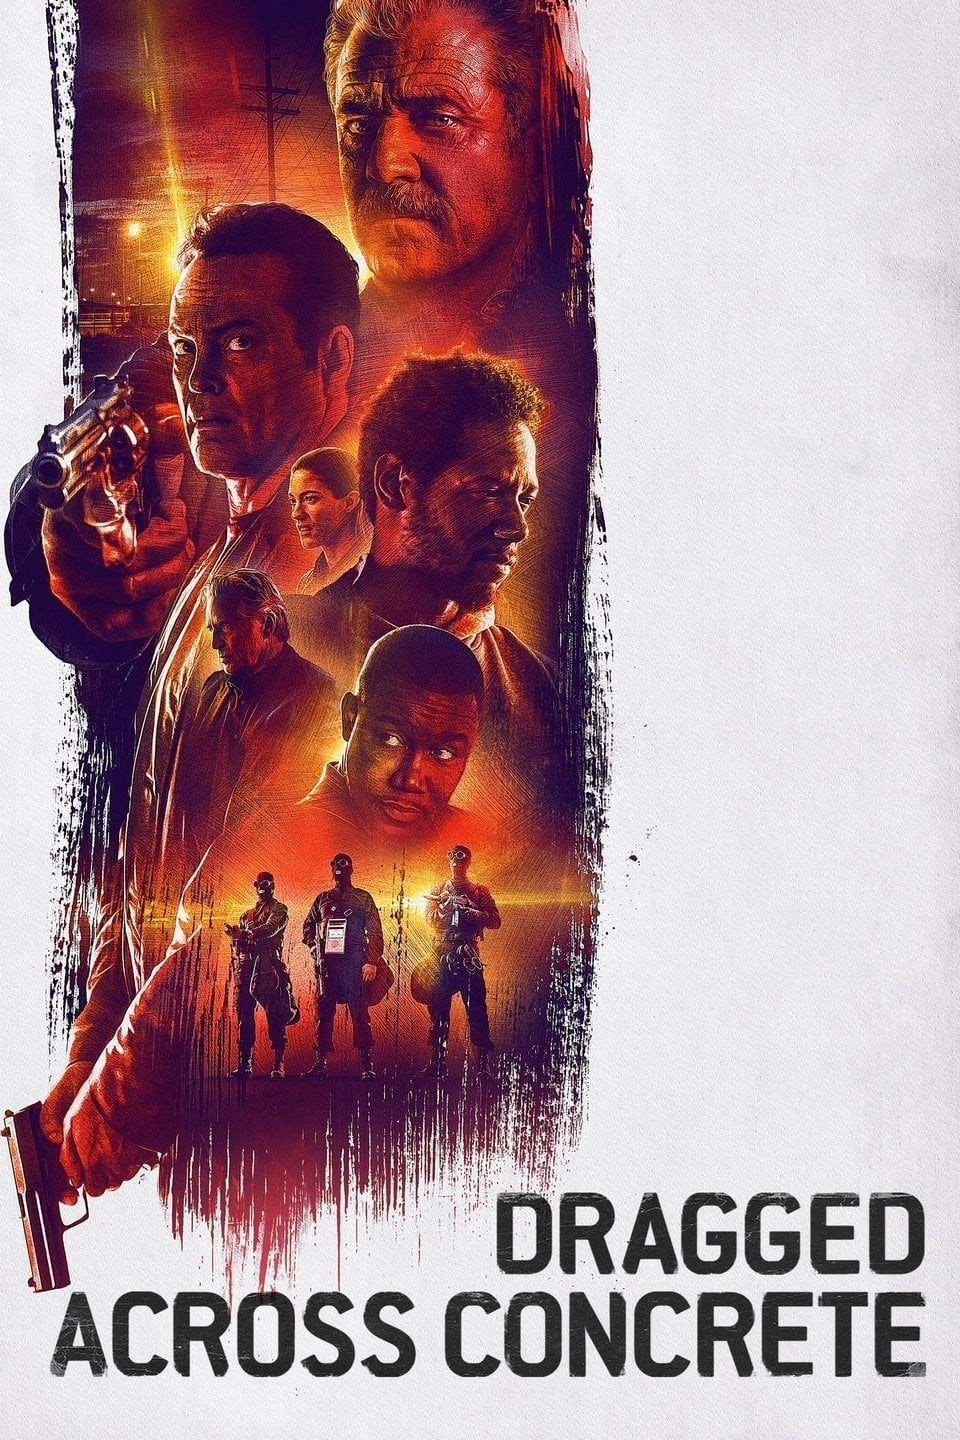 Download Dragged Across Concrete 2019 SweSub 1080p x264-Justiso Torrent